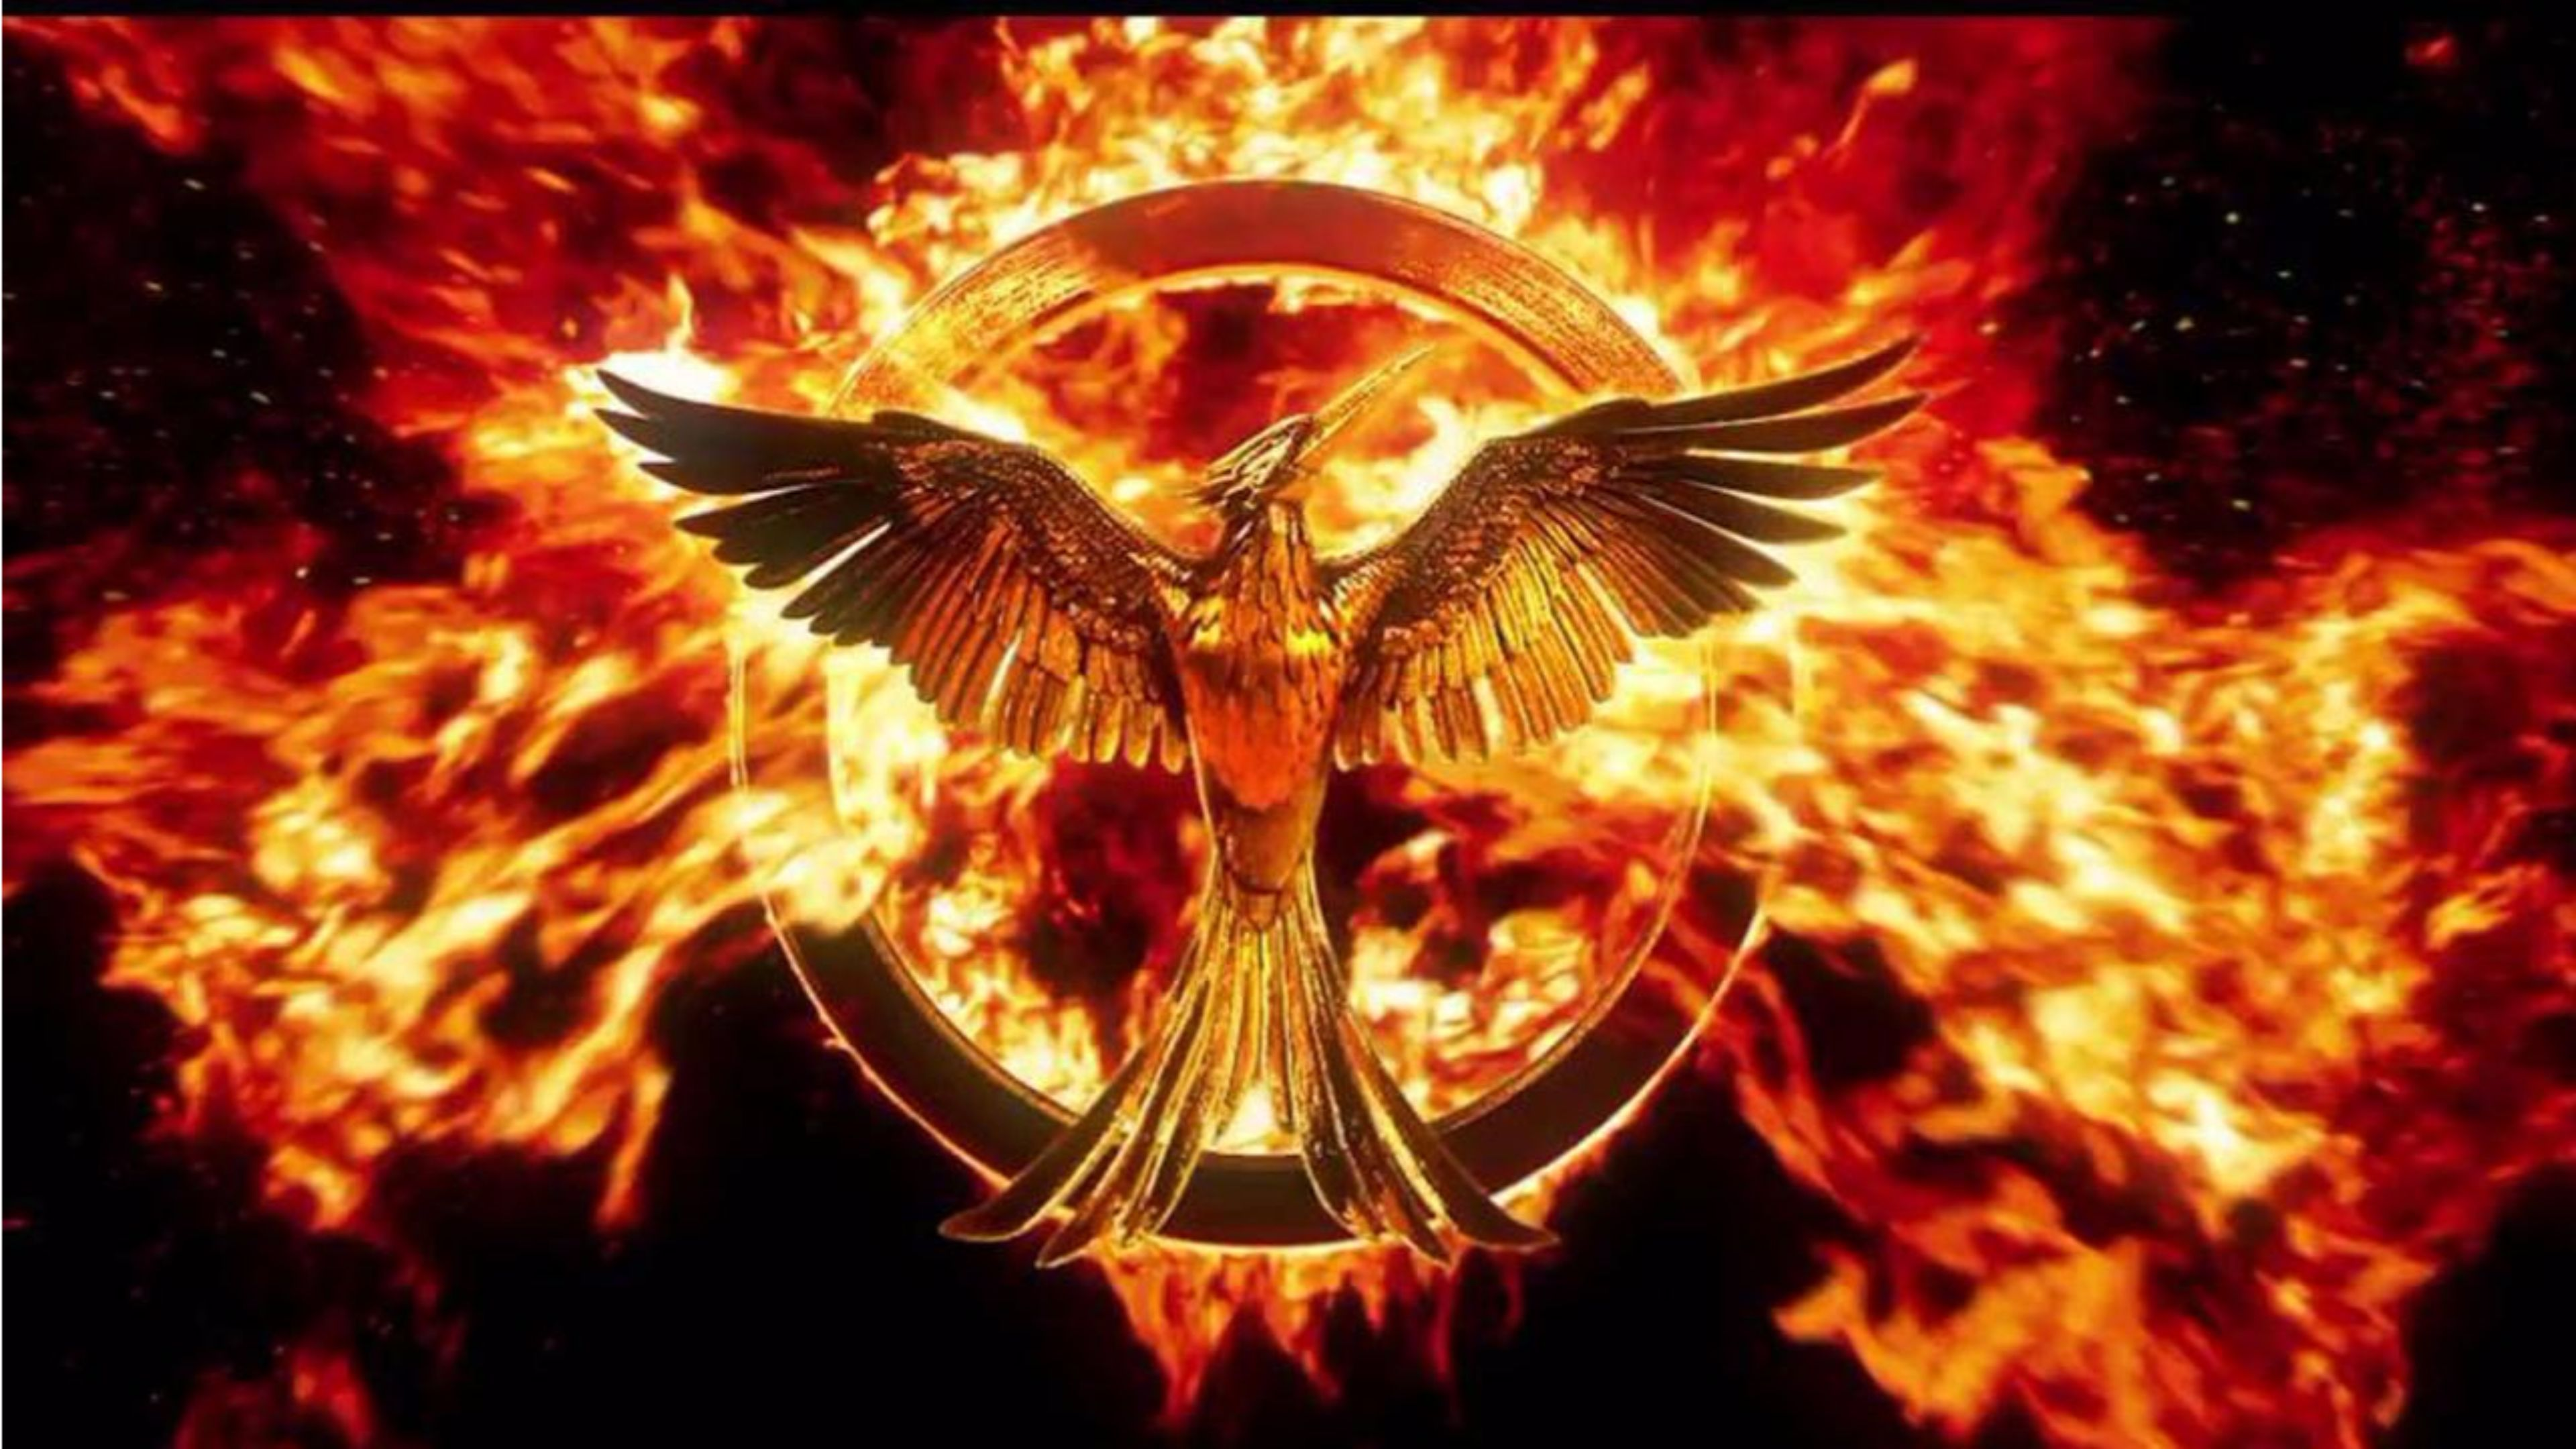 Hunger wallpapers photos and desktop backgrounds up to 8k the hunger games mockingjay part 2 wallpaper voltagebd Image collections